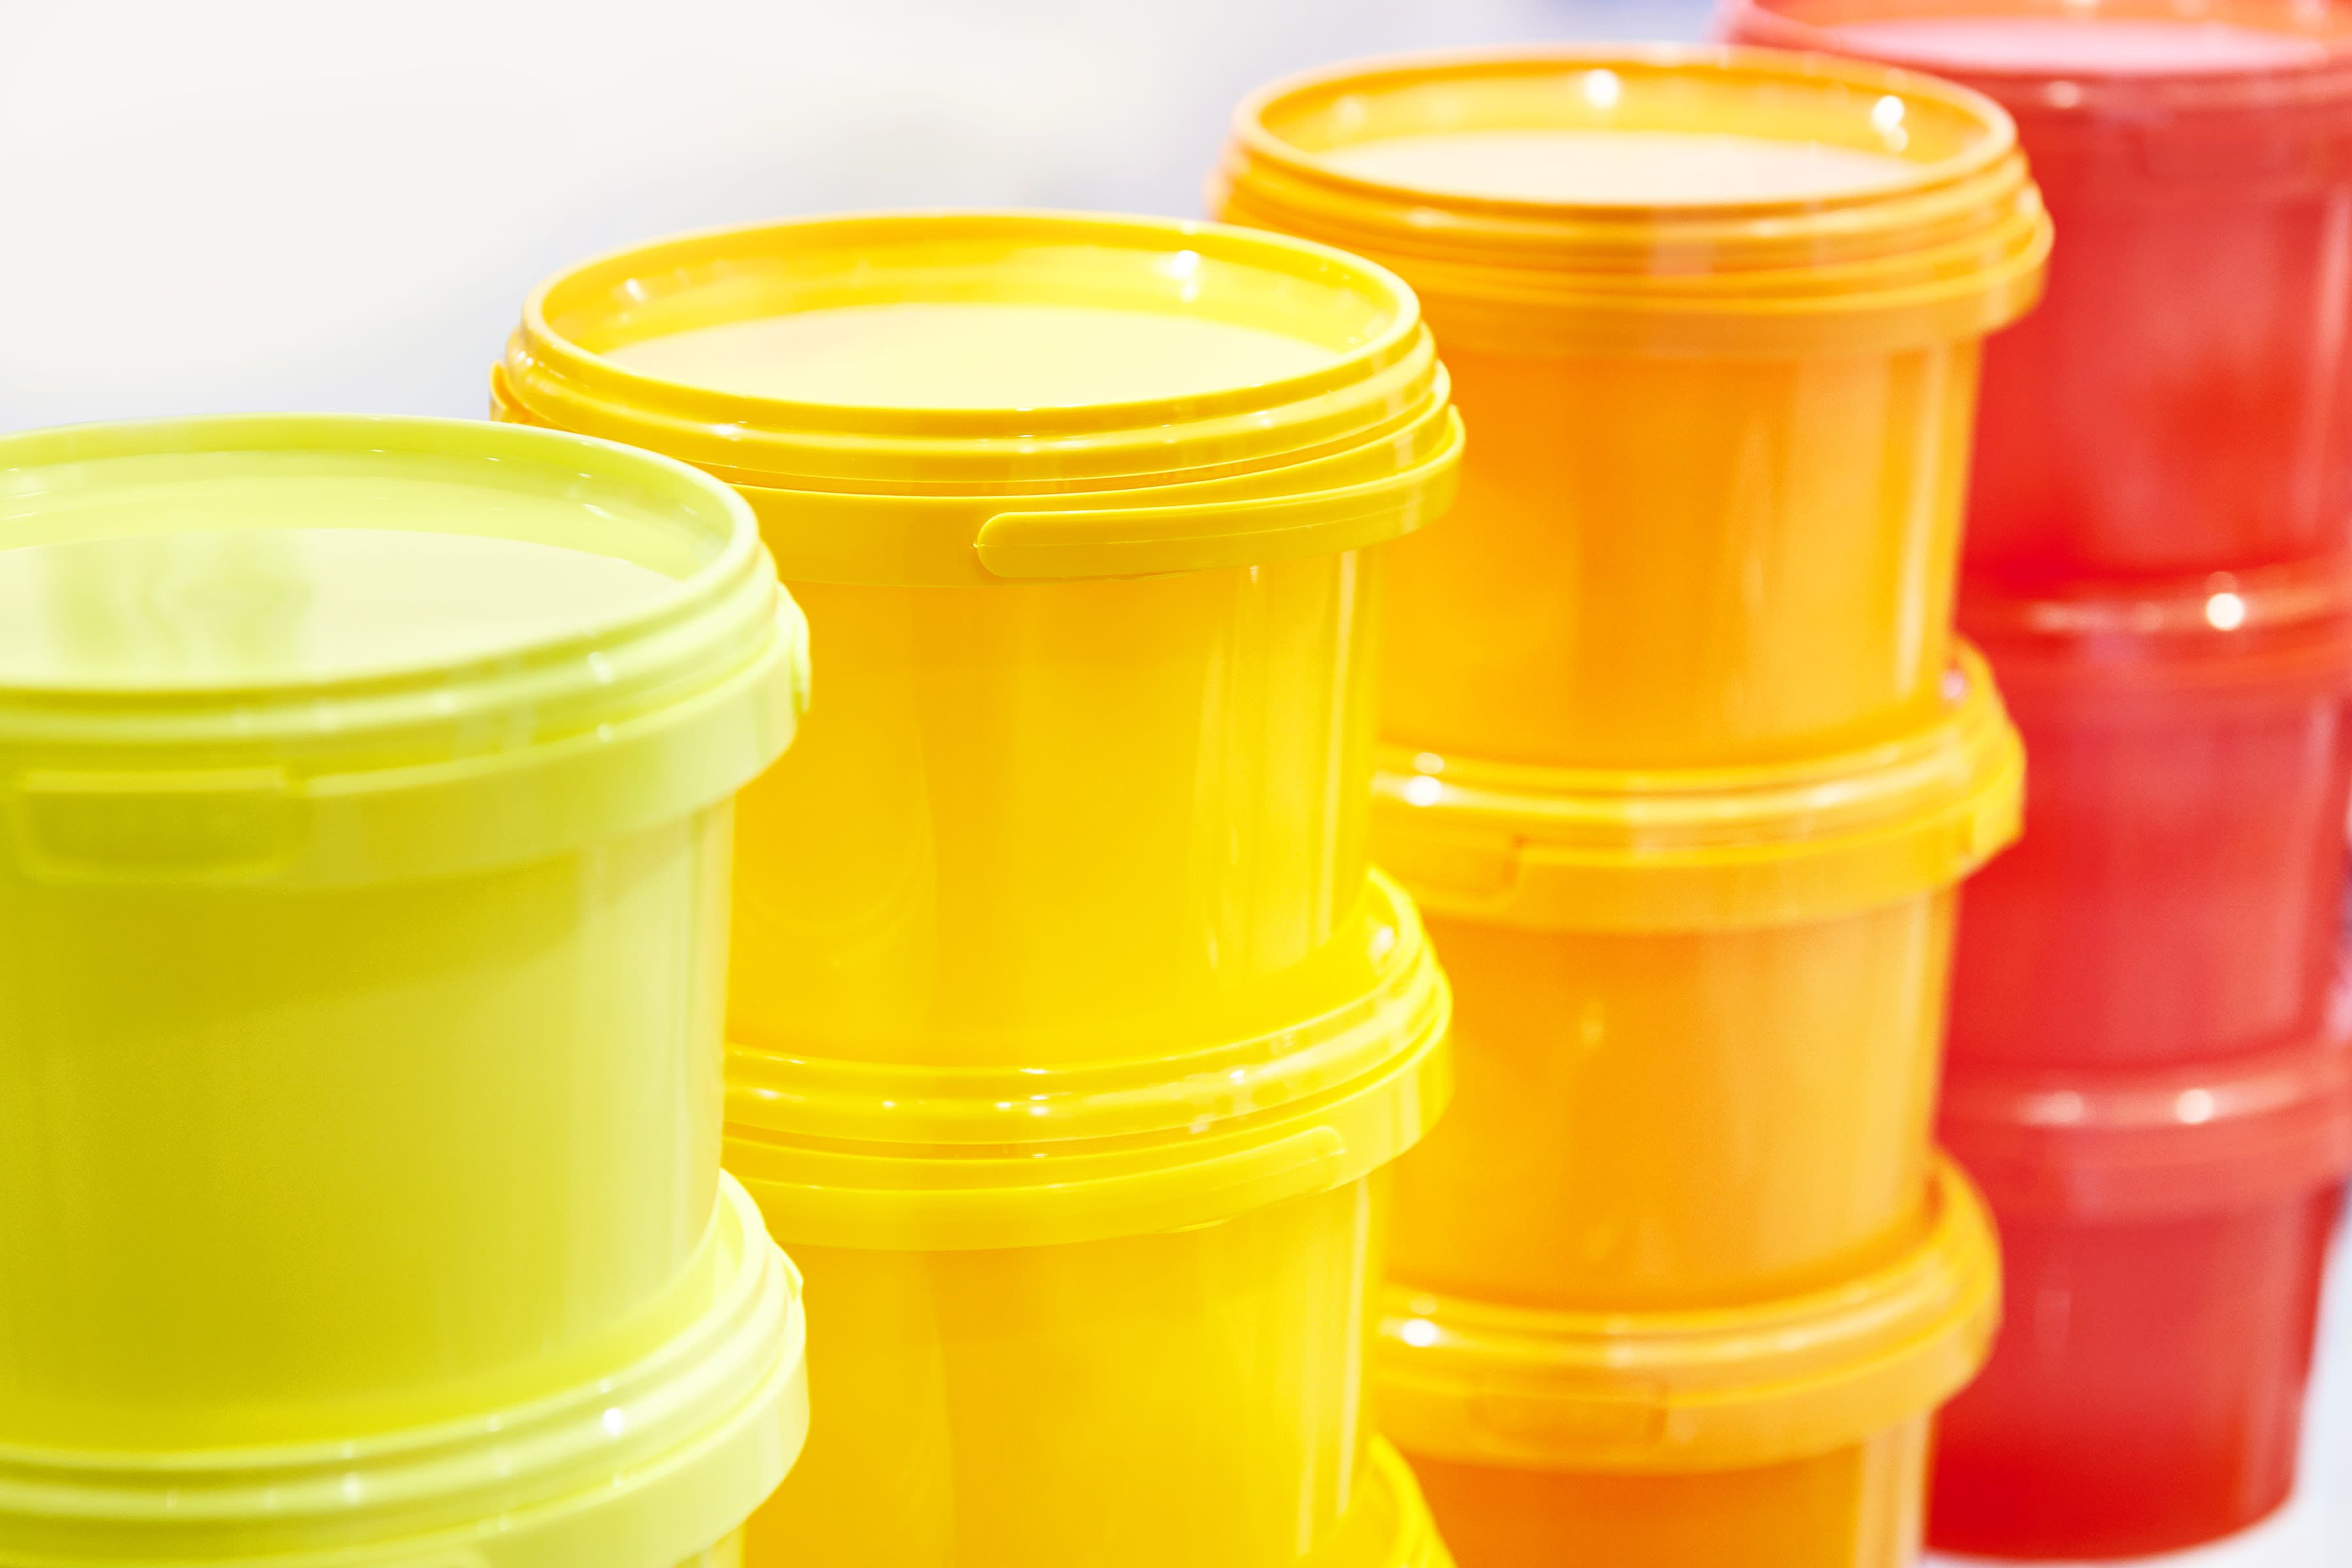 12 clever tupperware storage ideas your cluttered kitchen deserves tupperware storage on kitchen organization tupperware id=20217